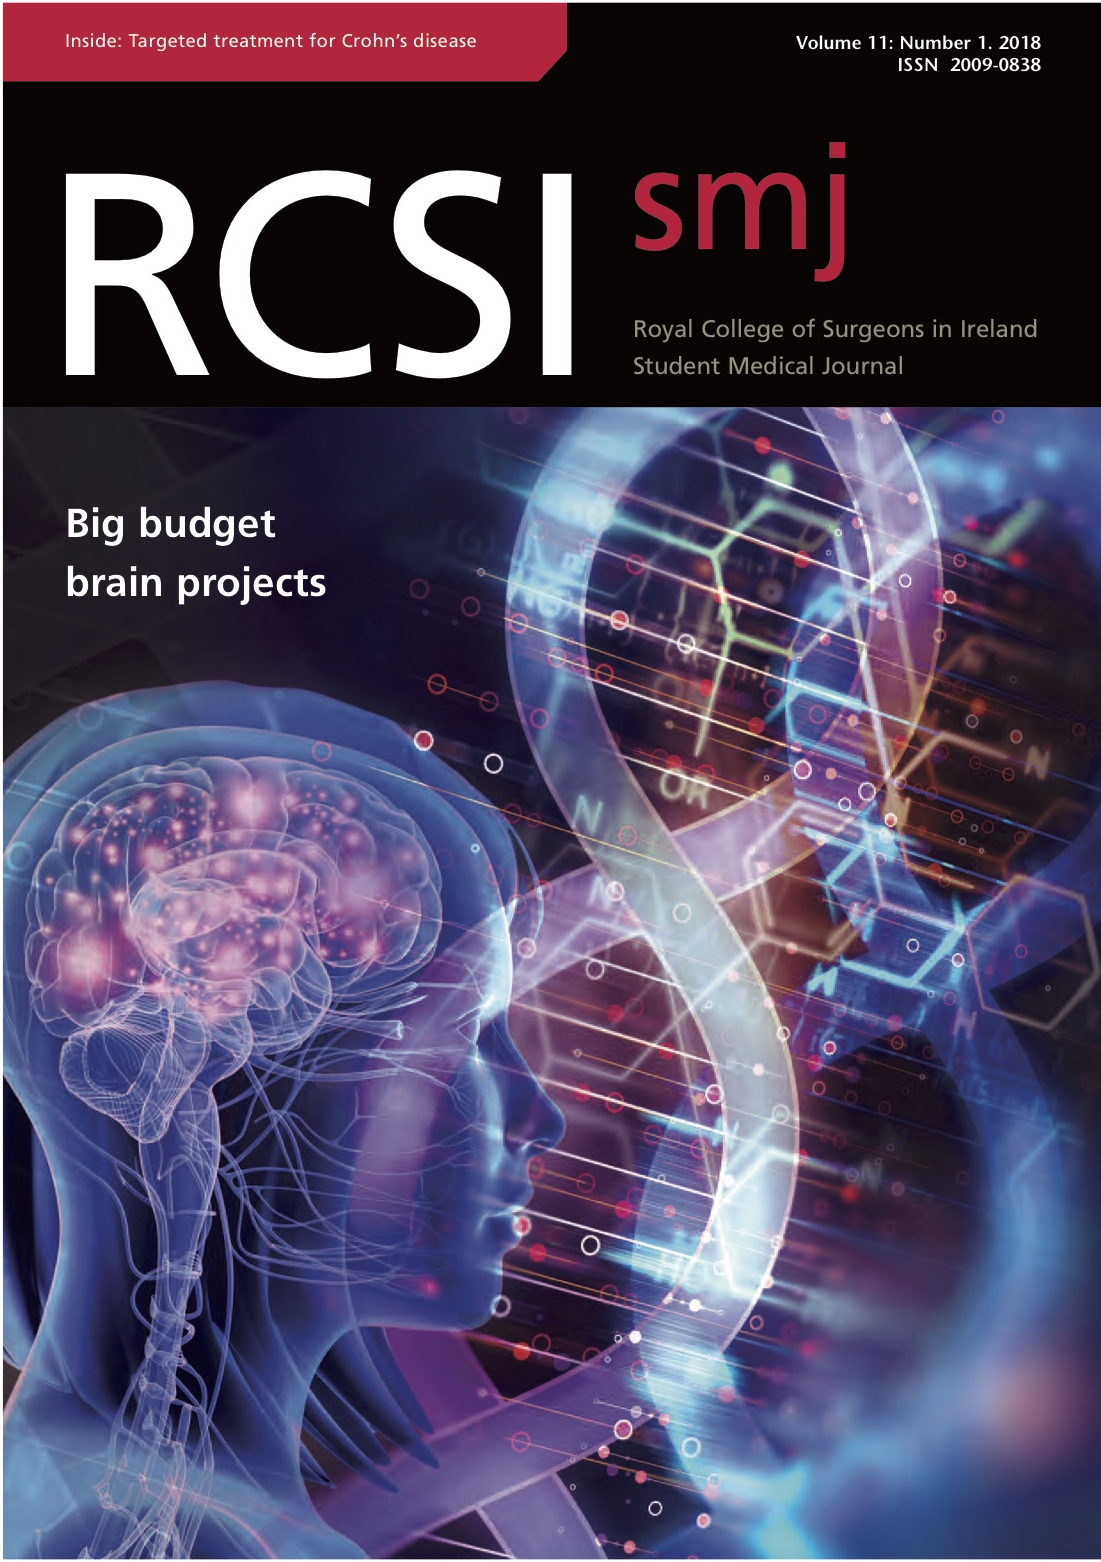 RCSI Student Medical Journal | RCSI Student Medical Journal